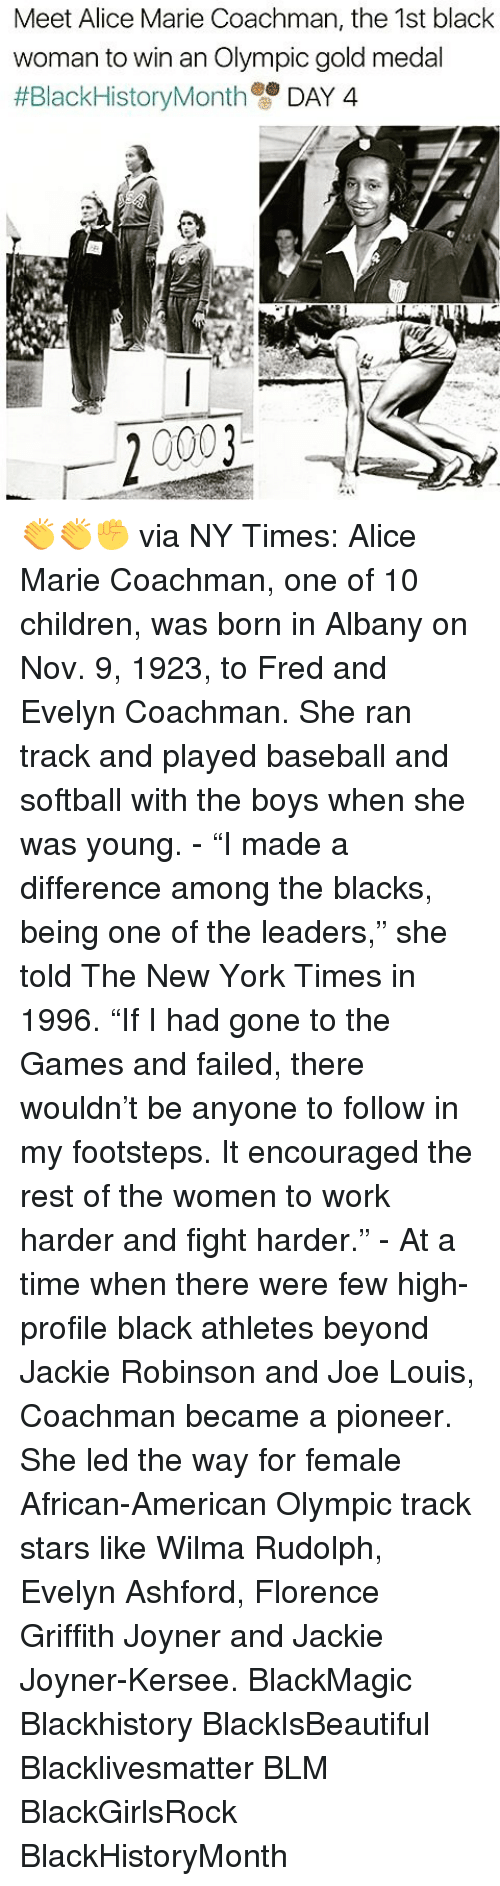 """wilma: Meet Alice Marie Coachman, the 1st black  woman to win an Olympic gold medal  #Black HistoryMonth  DAY 4  20003 👏👏✊ via NY Times: Alice Marie Coachman, one of 10 children, was born in Albany on Nov. 9, 1923, to Fred and Evelyn Coachman. She ran track and played baseball and softball with the boys when she was young. - """"I made a difference among the blacks, being one of the leaders,"""" she told The New York Times in 1996. """"If I had gone to the Games and failed, there wouldn't be anyone to follow in my footsteps. It encouraged the rest of the women to work harder and fight harder."""" - At a time when there were few high-profile black athletes beyond Jackie Robinson and Joe Louis, Coachman became a pioneer. She led the way for female African-American Olympic track stars like Wilma Rudolph, Evelyn Ashford, Florence Griffith Joyner and Jackie Joyner-Kersee. BlackMagic Blackhistory BlackIsBeautiful Blacklivesmatter BLM BlackGirlsRock BlackHistoryMonth"""